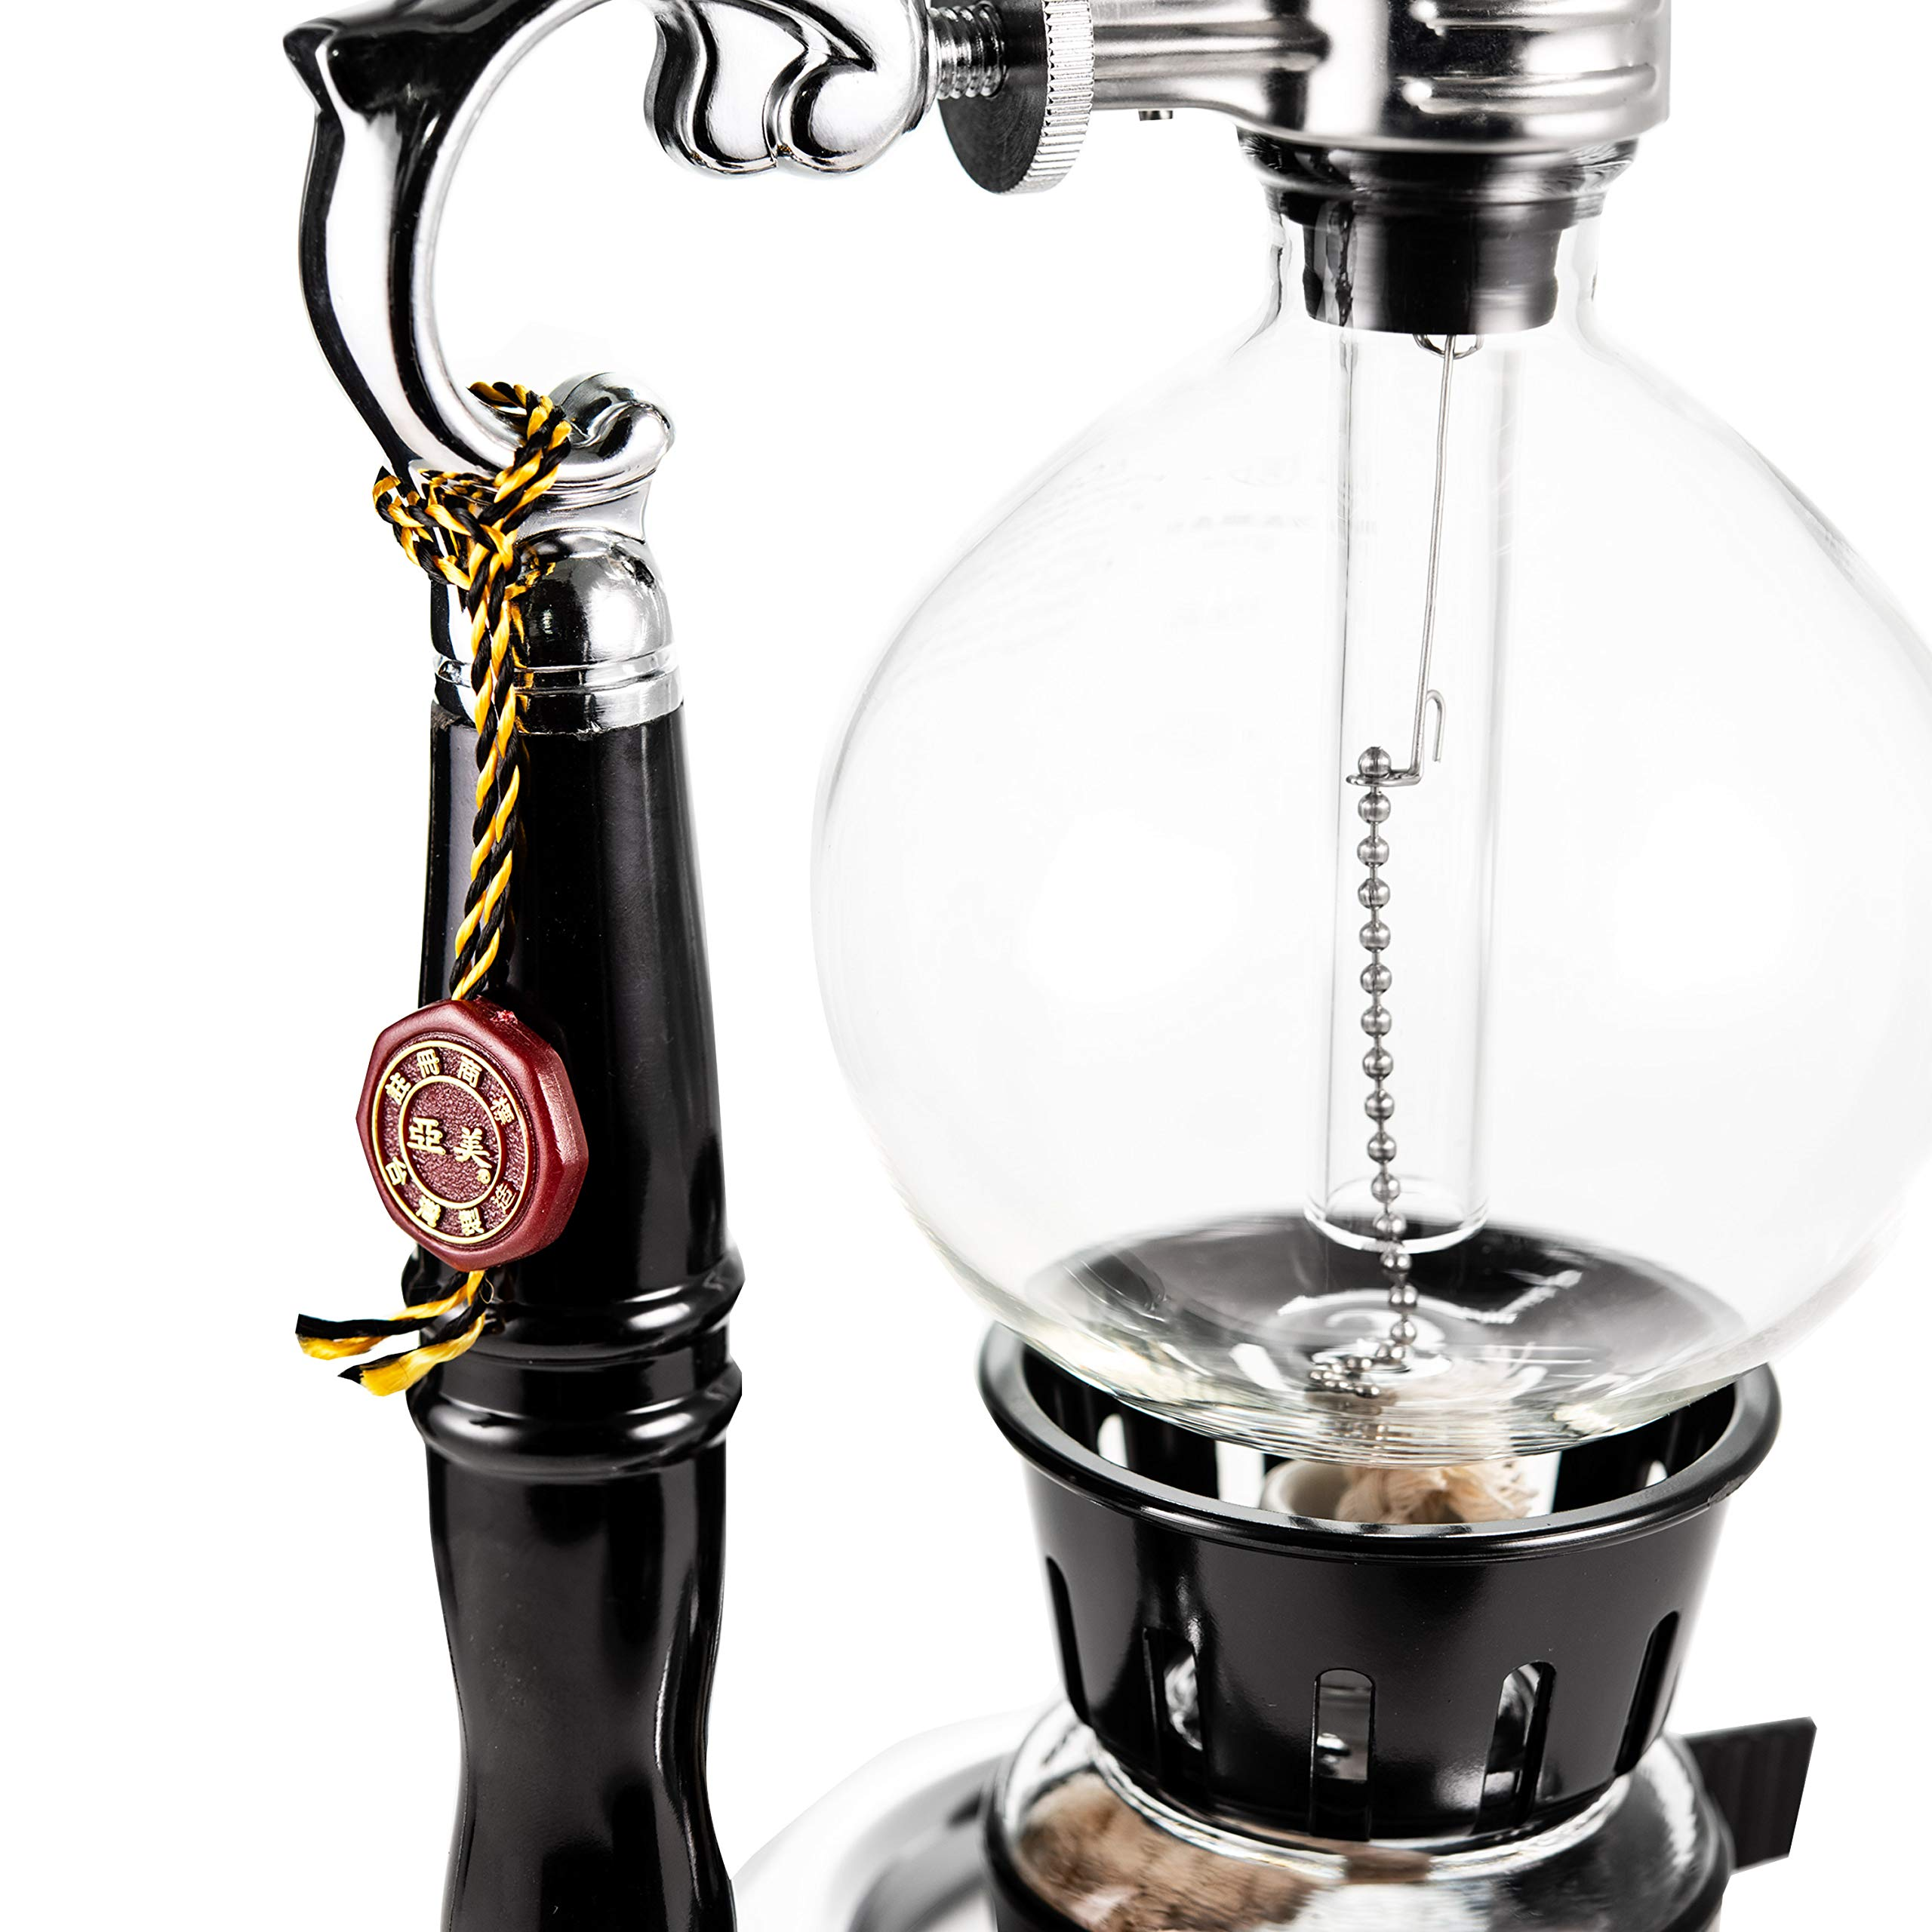 YAMA Glass 5 Cup Tabletop Siphon Gravity Coffee Maker with Alcohol Burner by Yama Glass (Image #6)